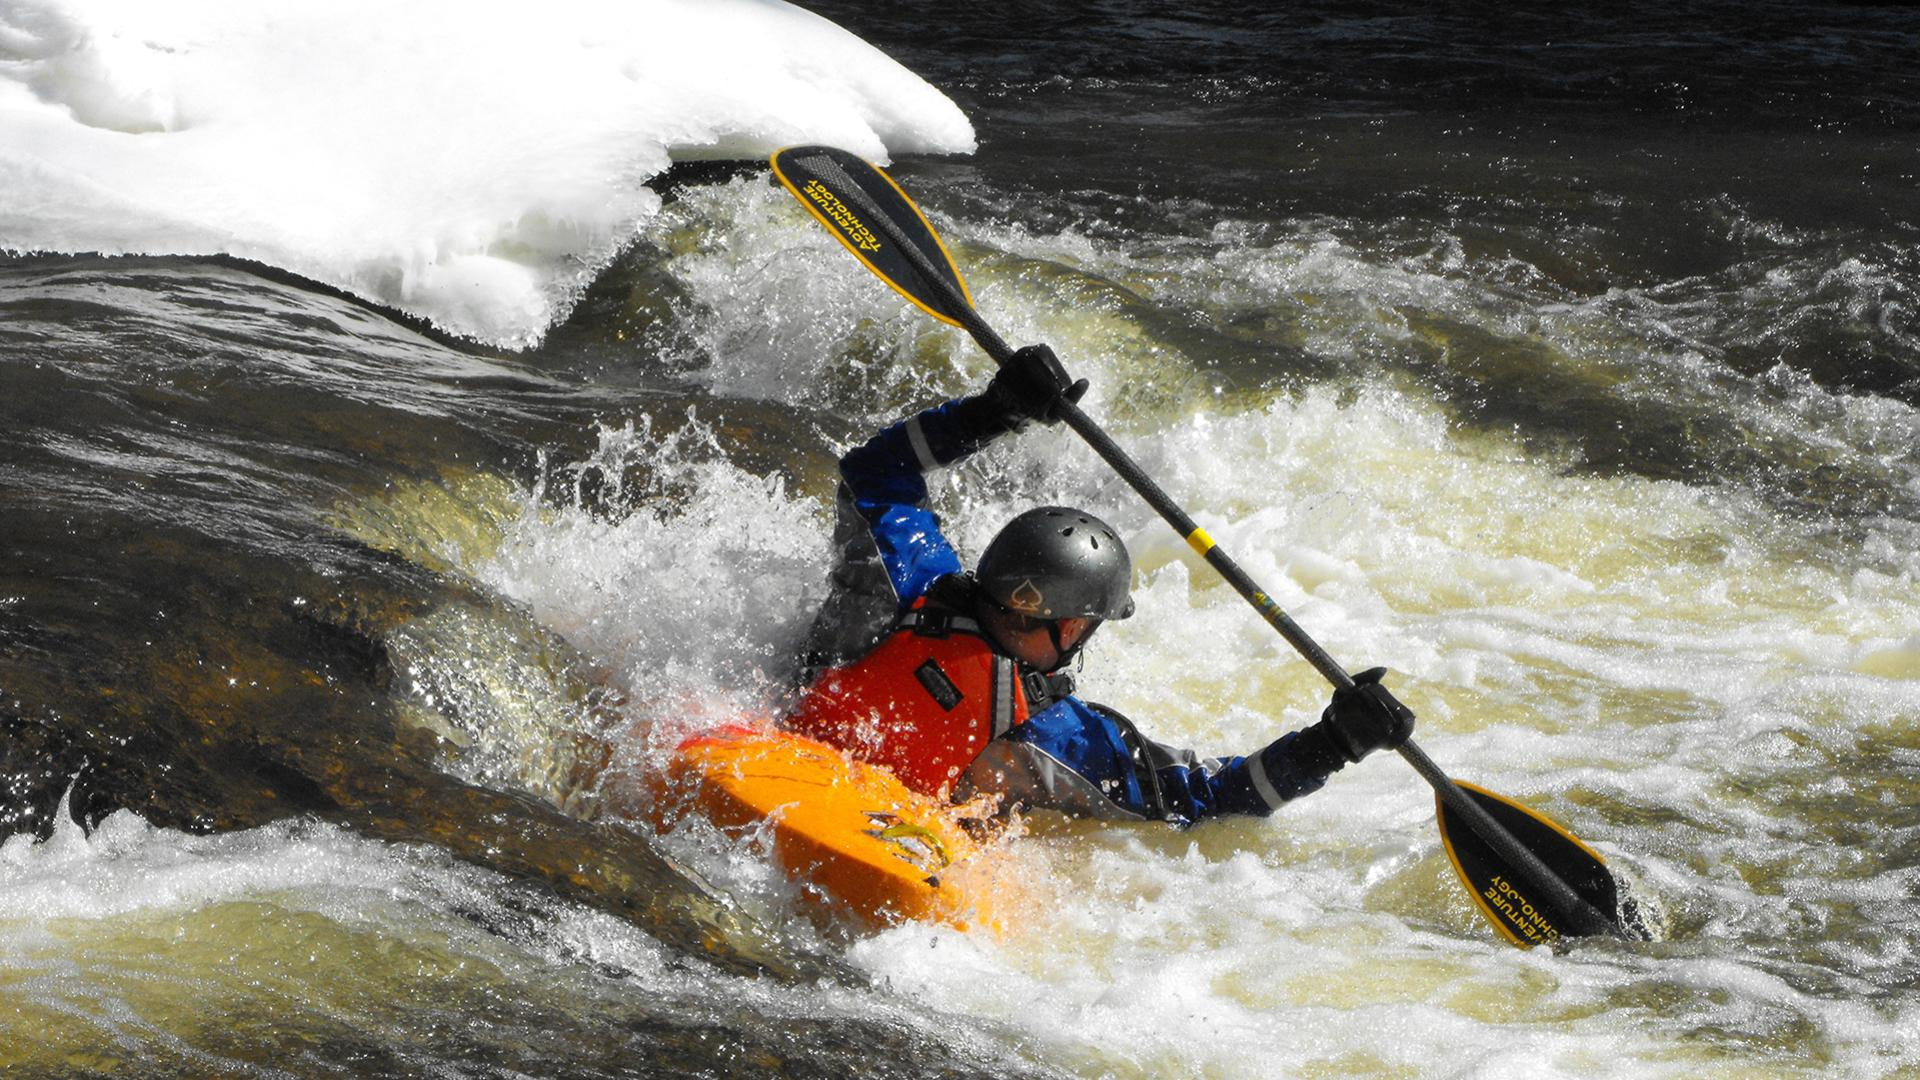 A kayaker takes advantage of the winter white caps as he navigates down the river